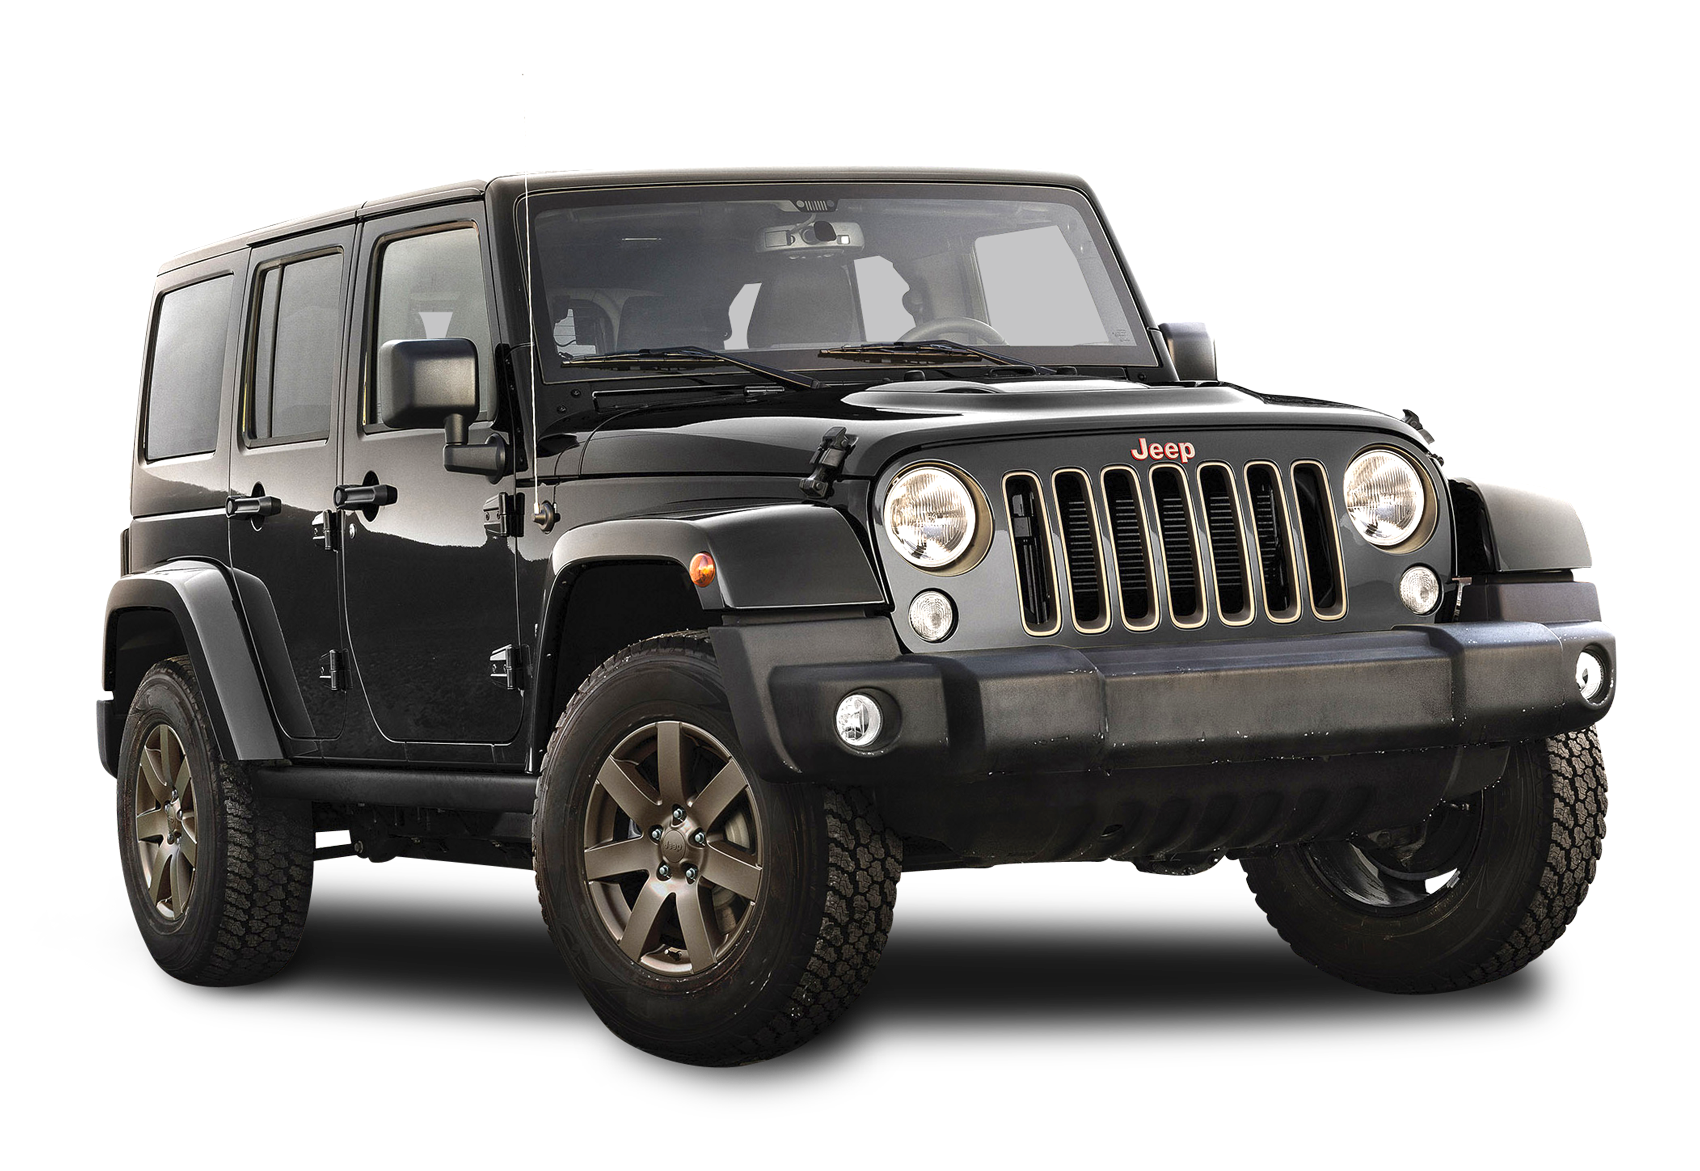 Png car. Jeep images free download